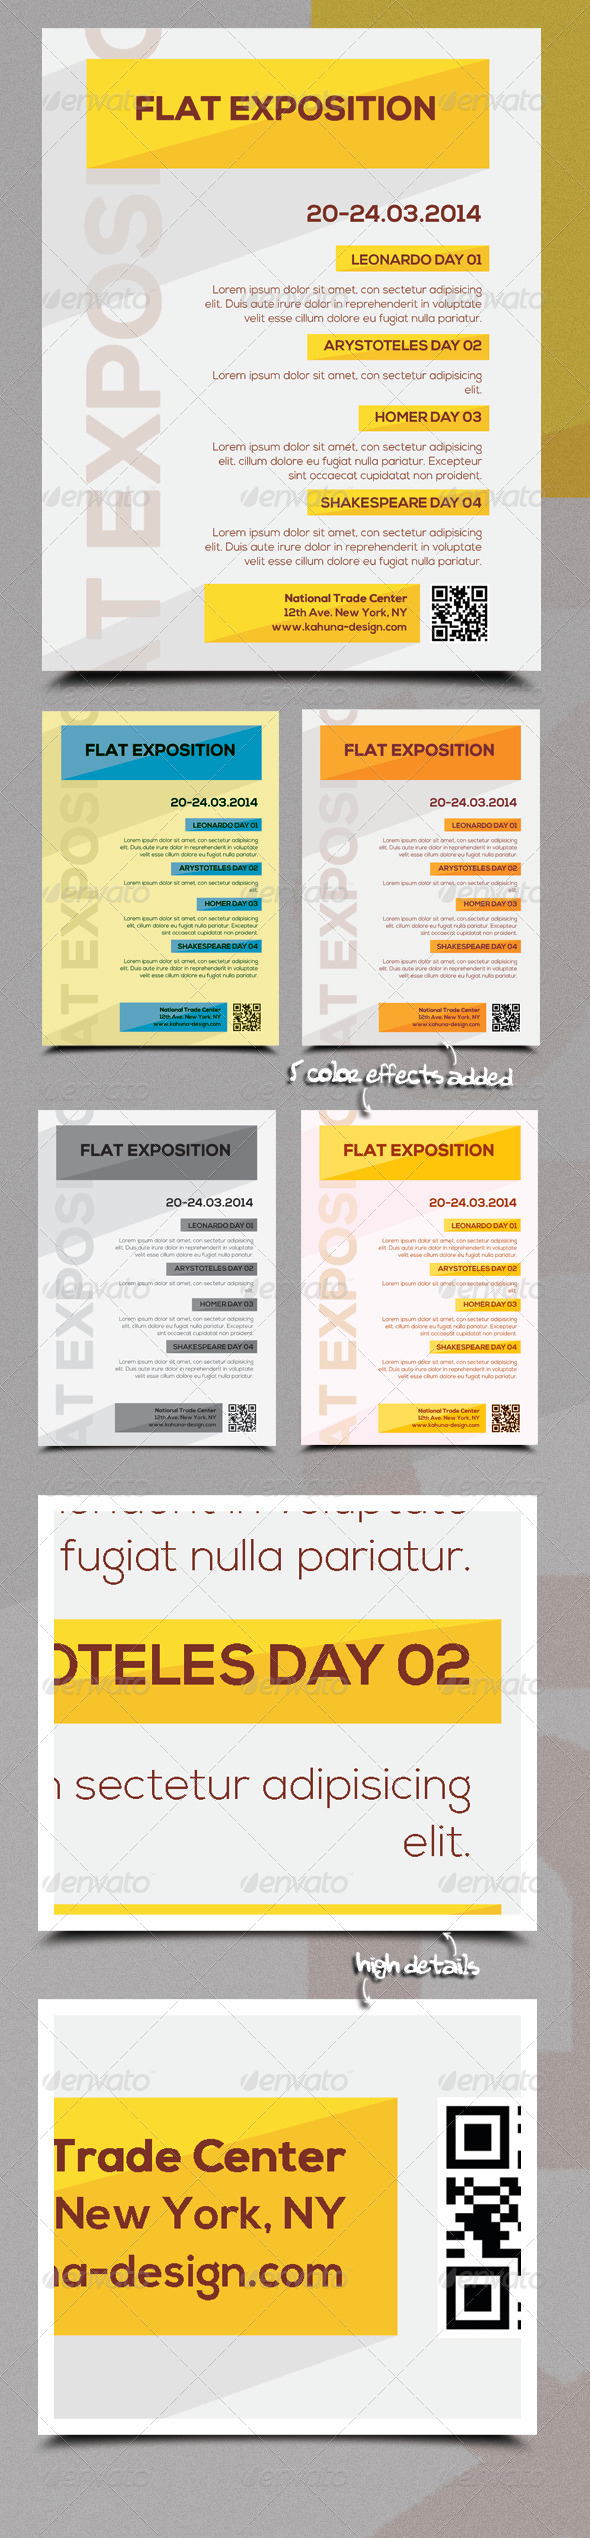 GraphicRiver Flat Exposition Poster Flyer 6027852